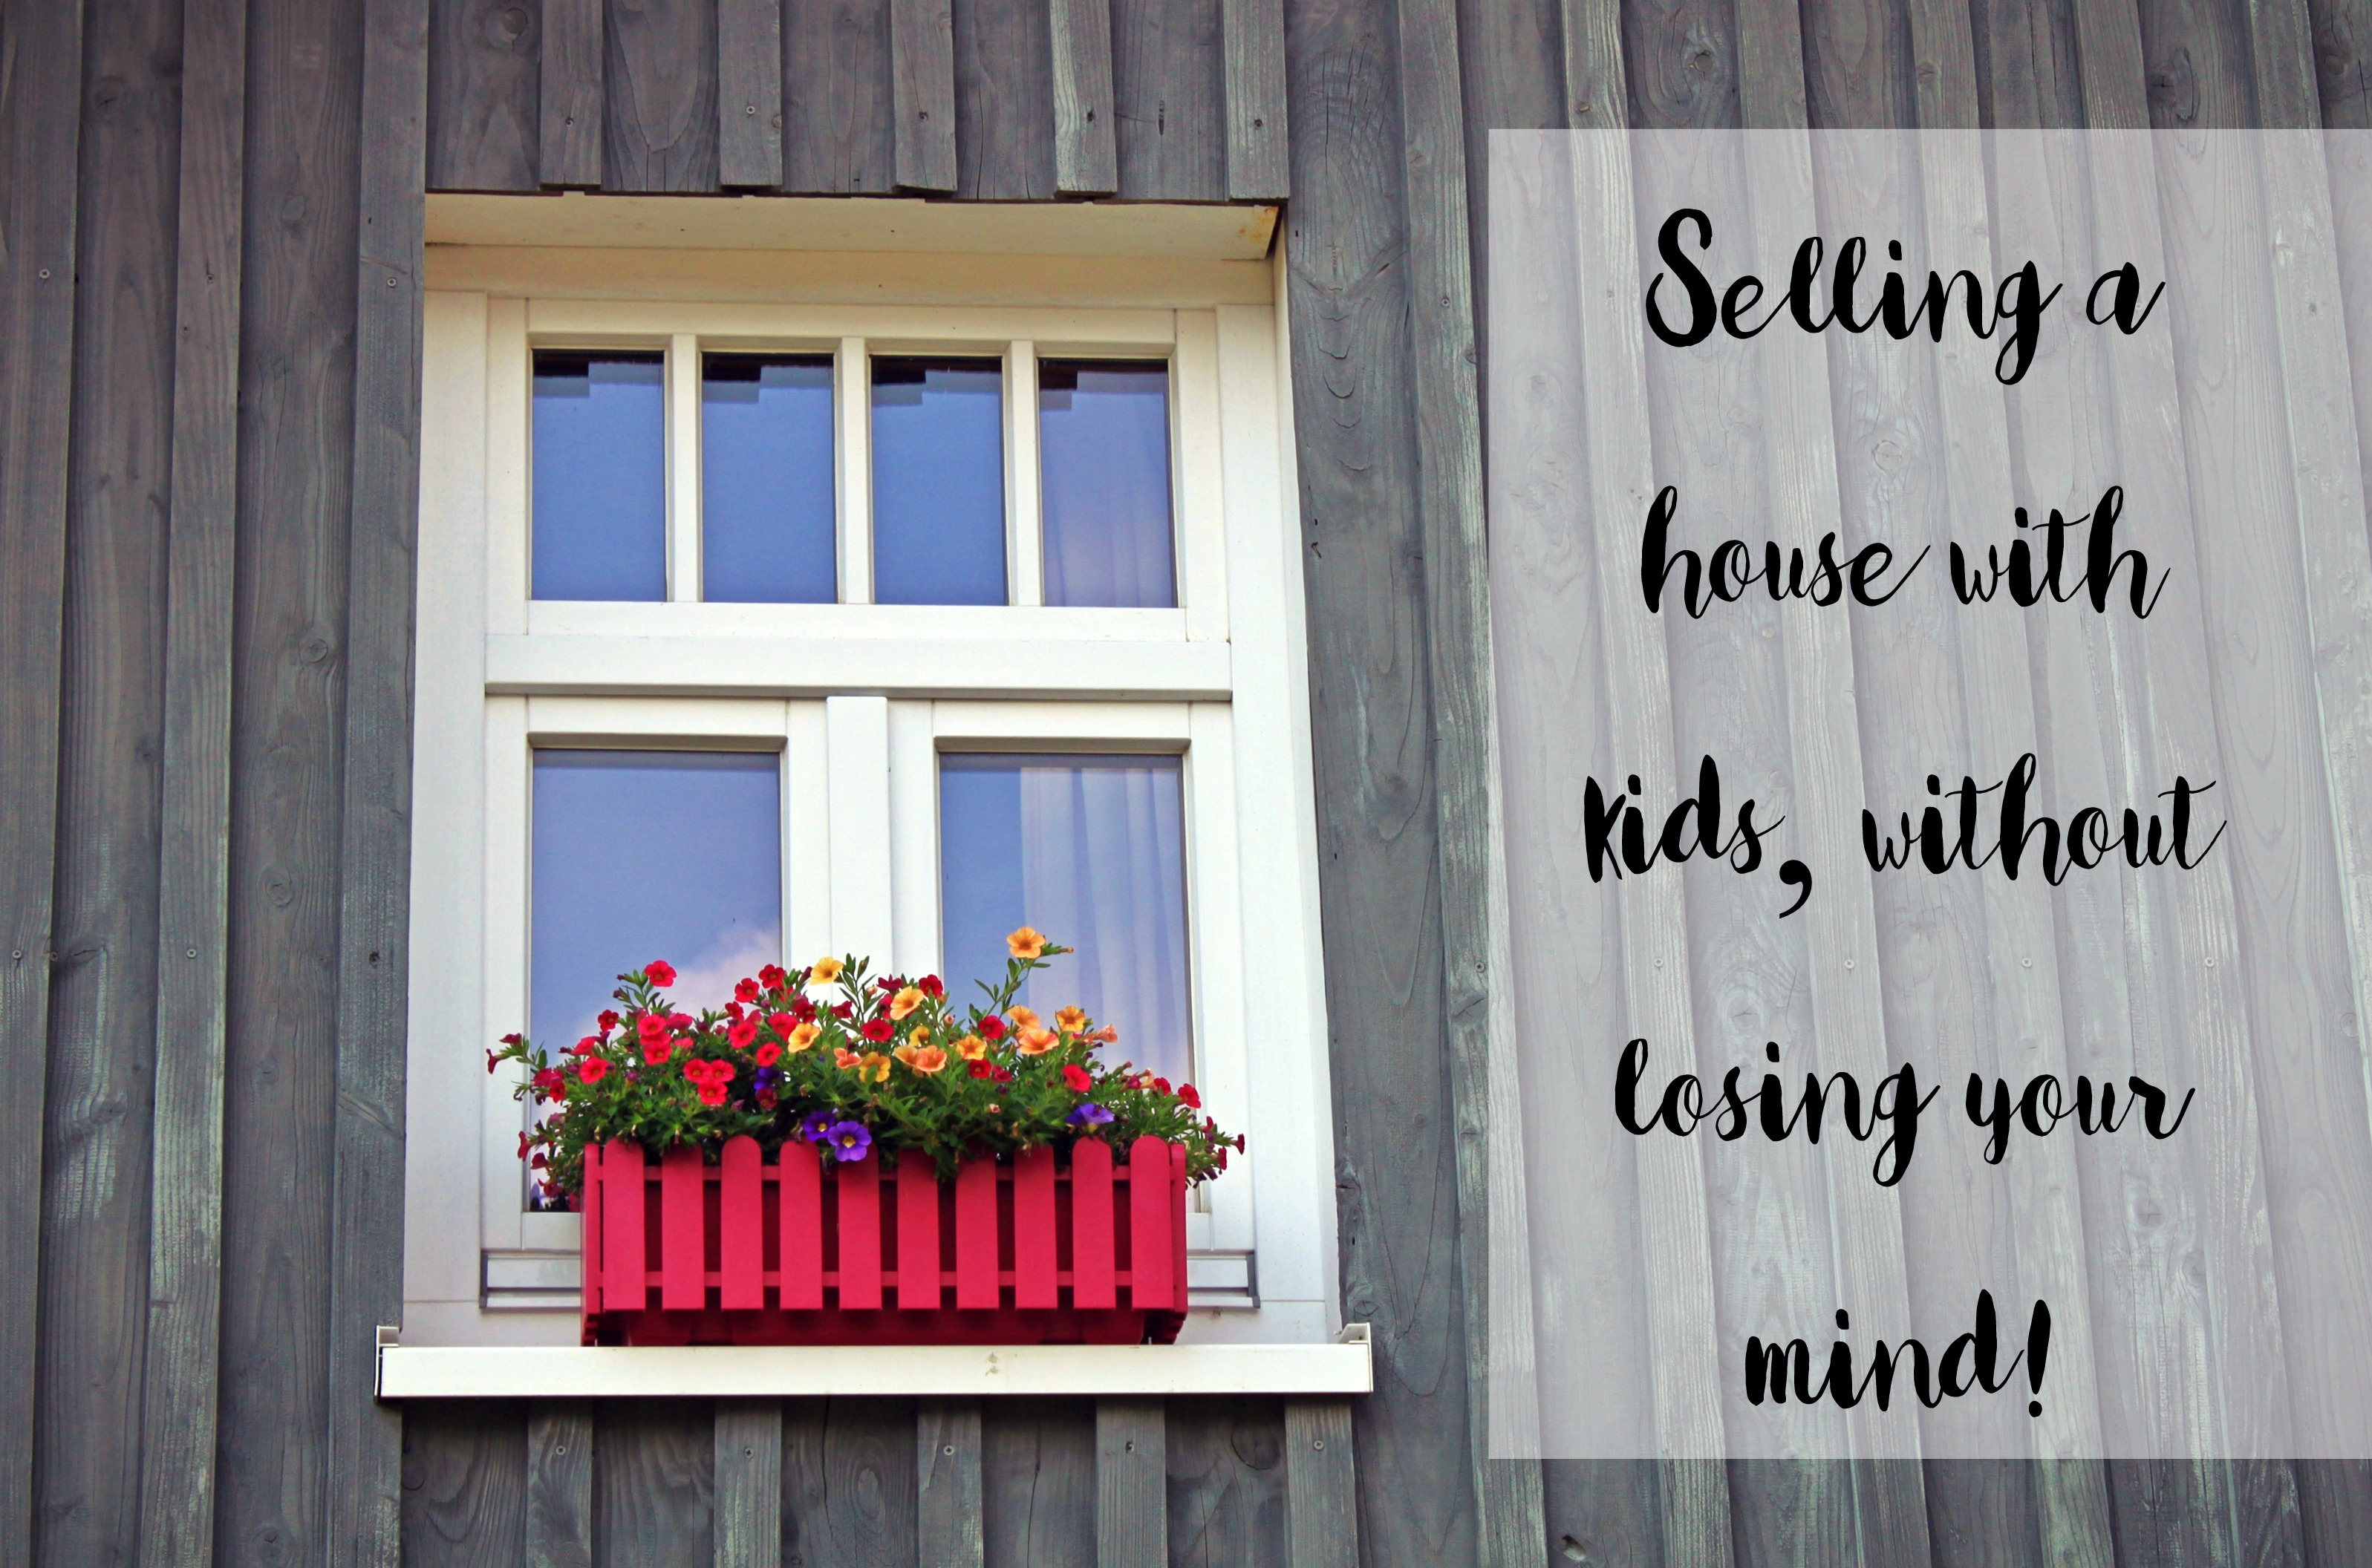 Selling a house with kids, without losing your mind!